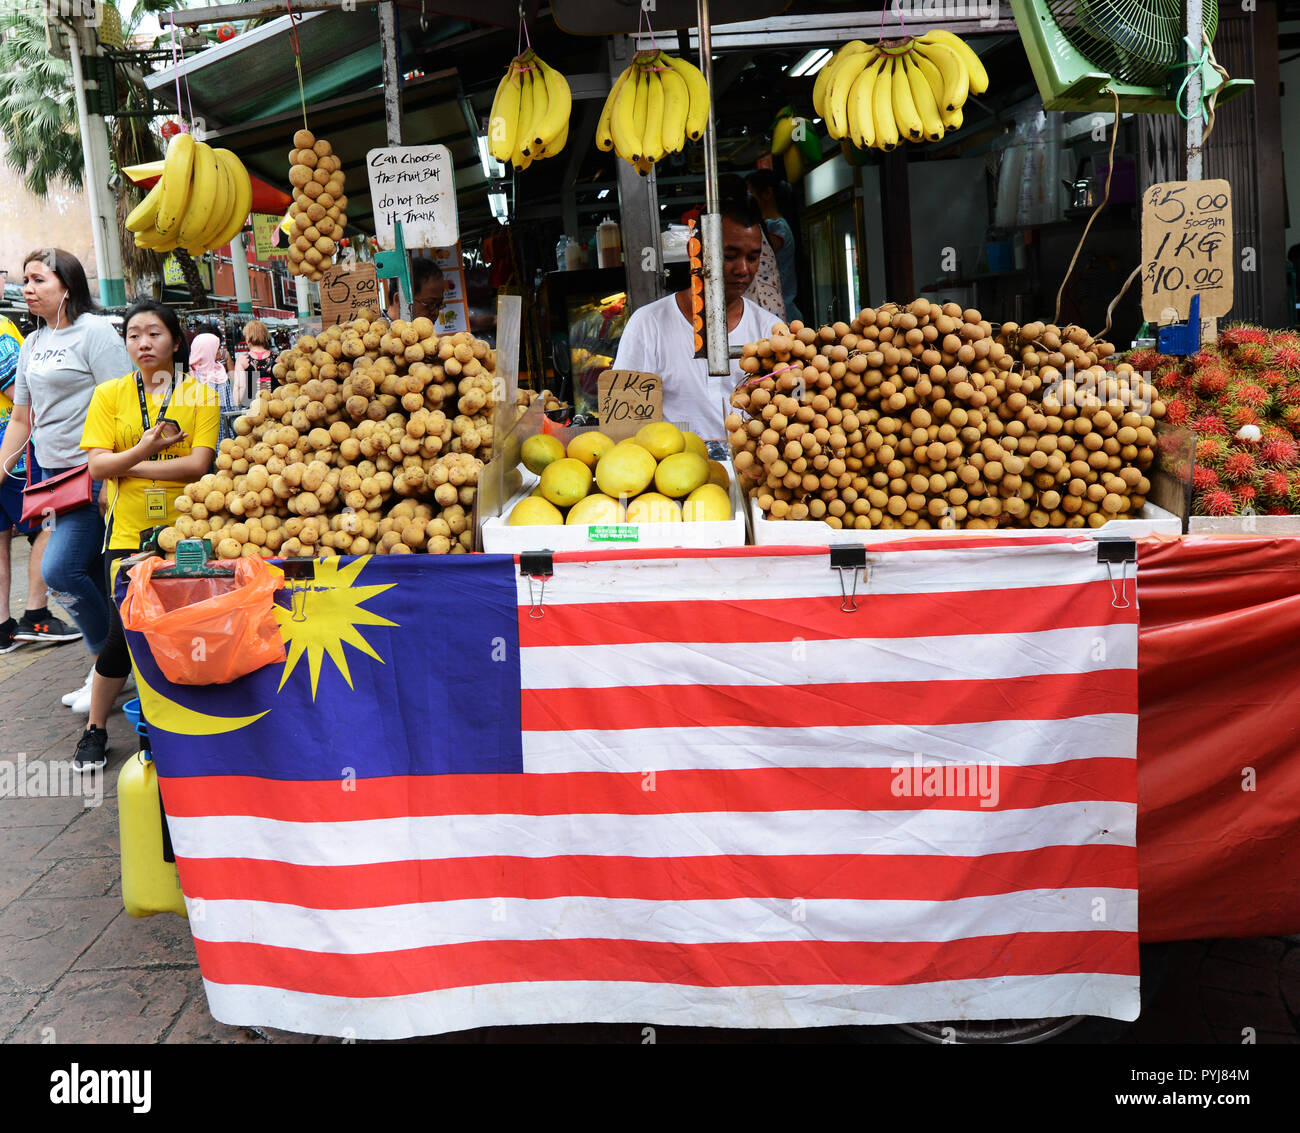 A Longan fruit vendor at the market in KL, Malaysia. - Stock Image